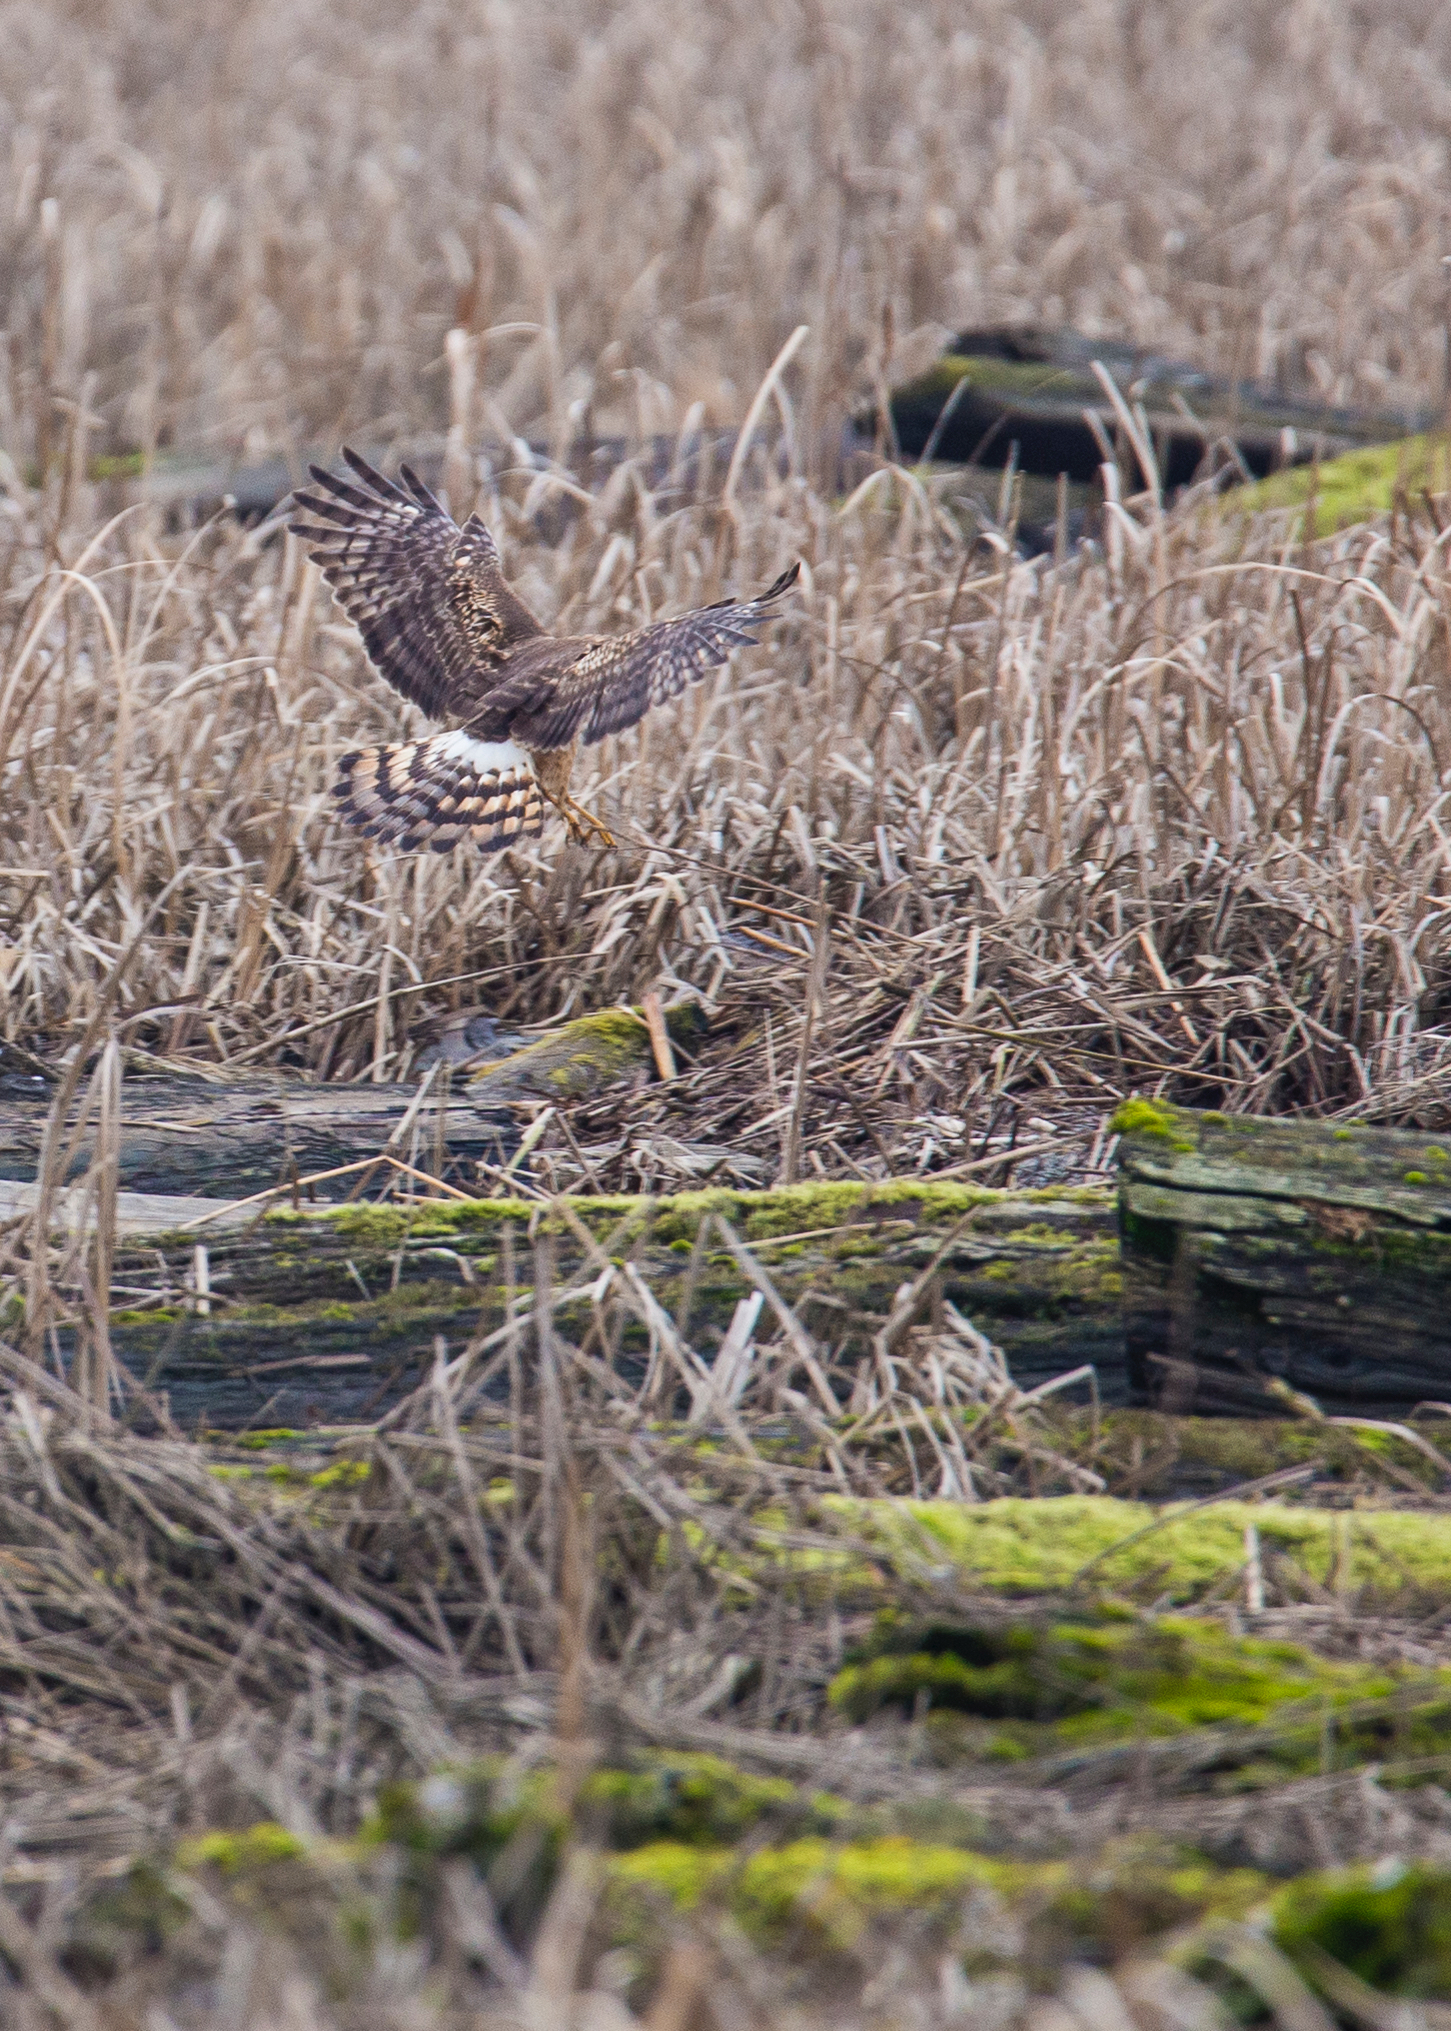 The northern harrier coming in for a landing.